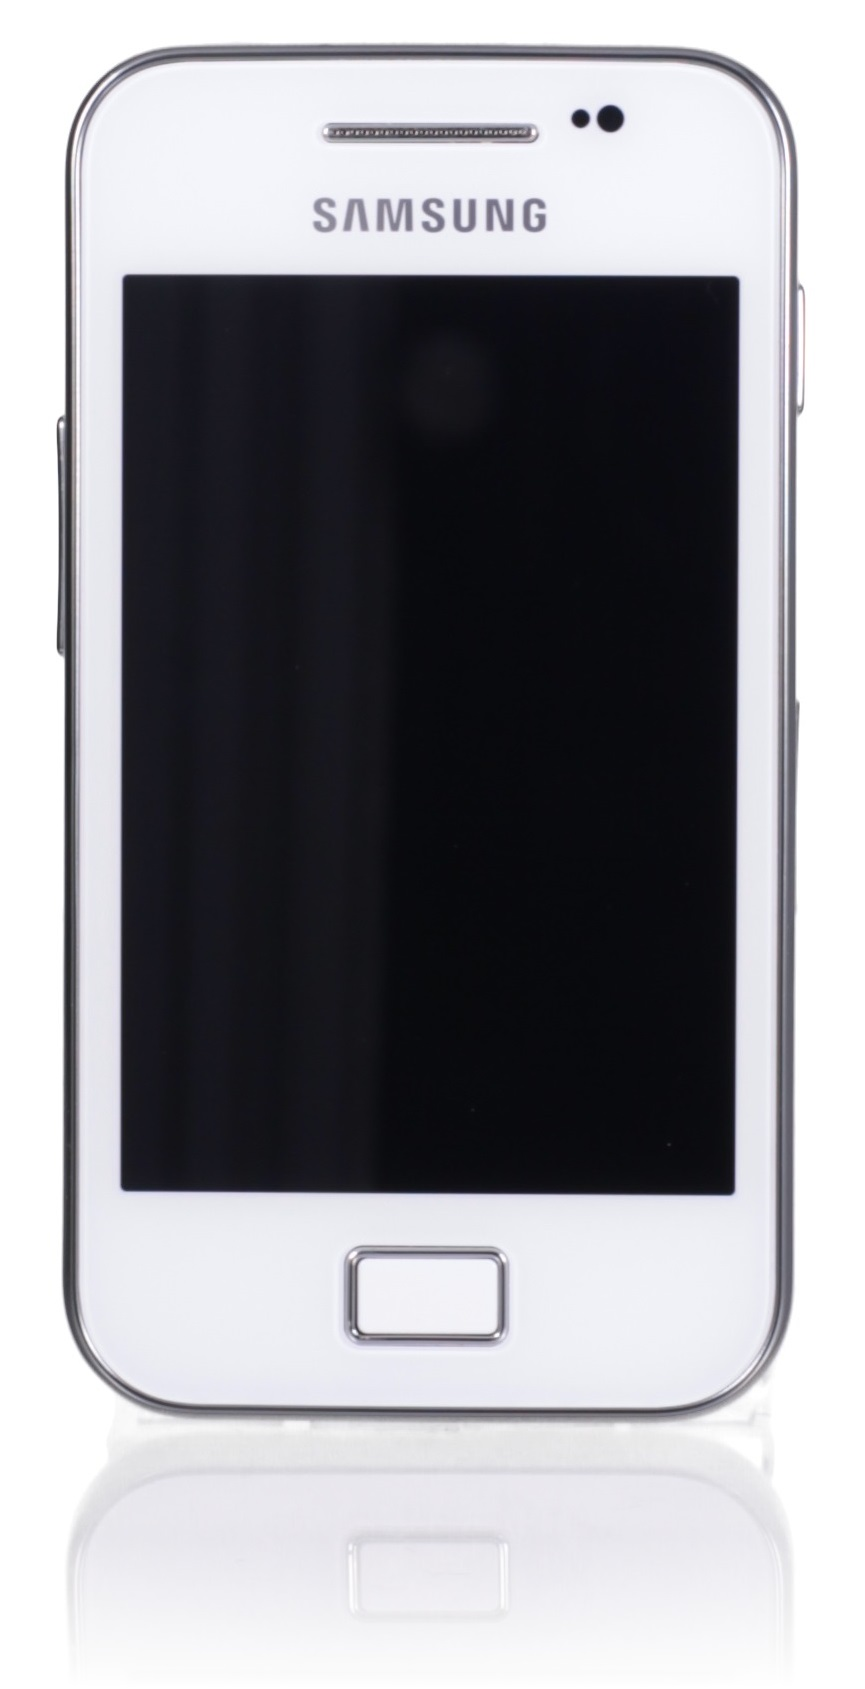 Samsung S5830i Galaxy Ace 150MB pure white